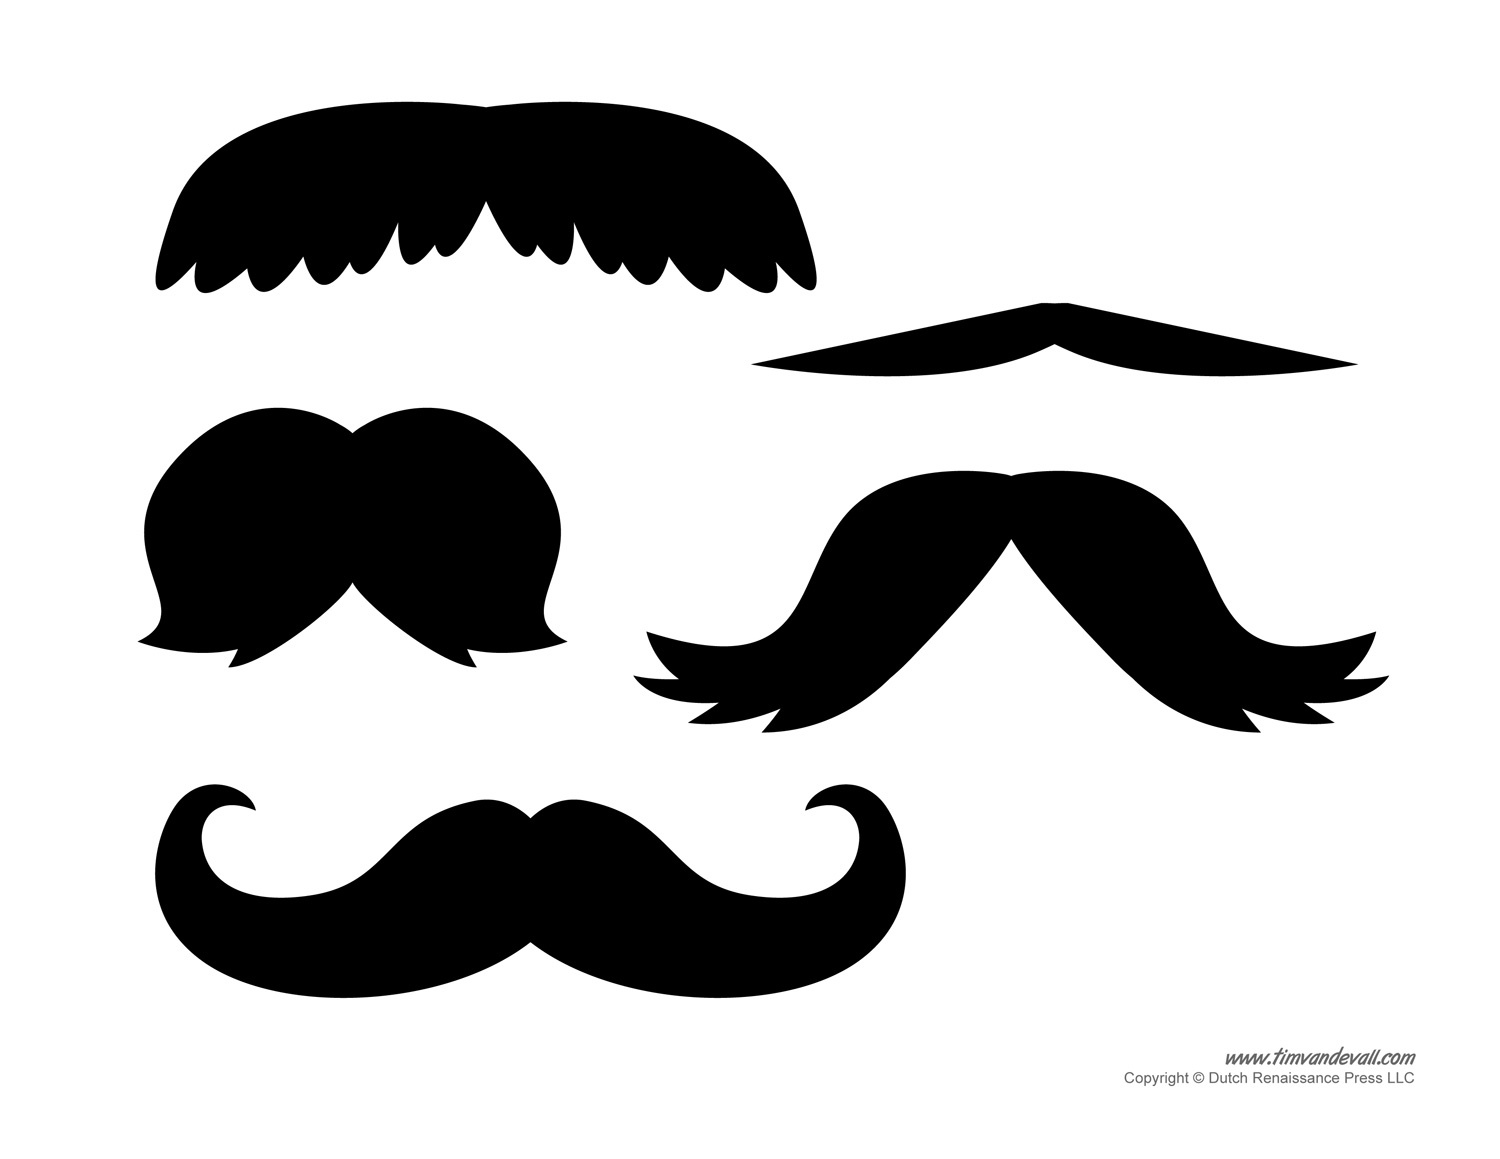 Printable Mustache Templates | Mustaches For Kids - Free Printable Mustache